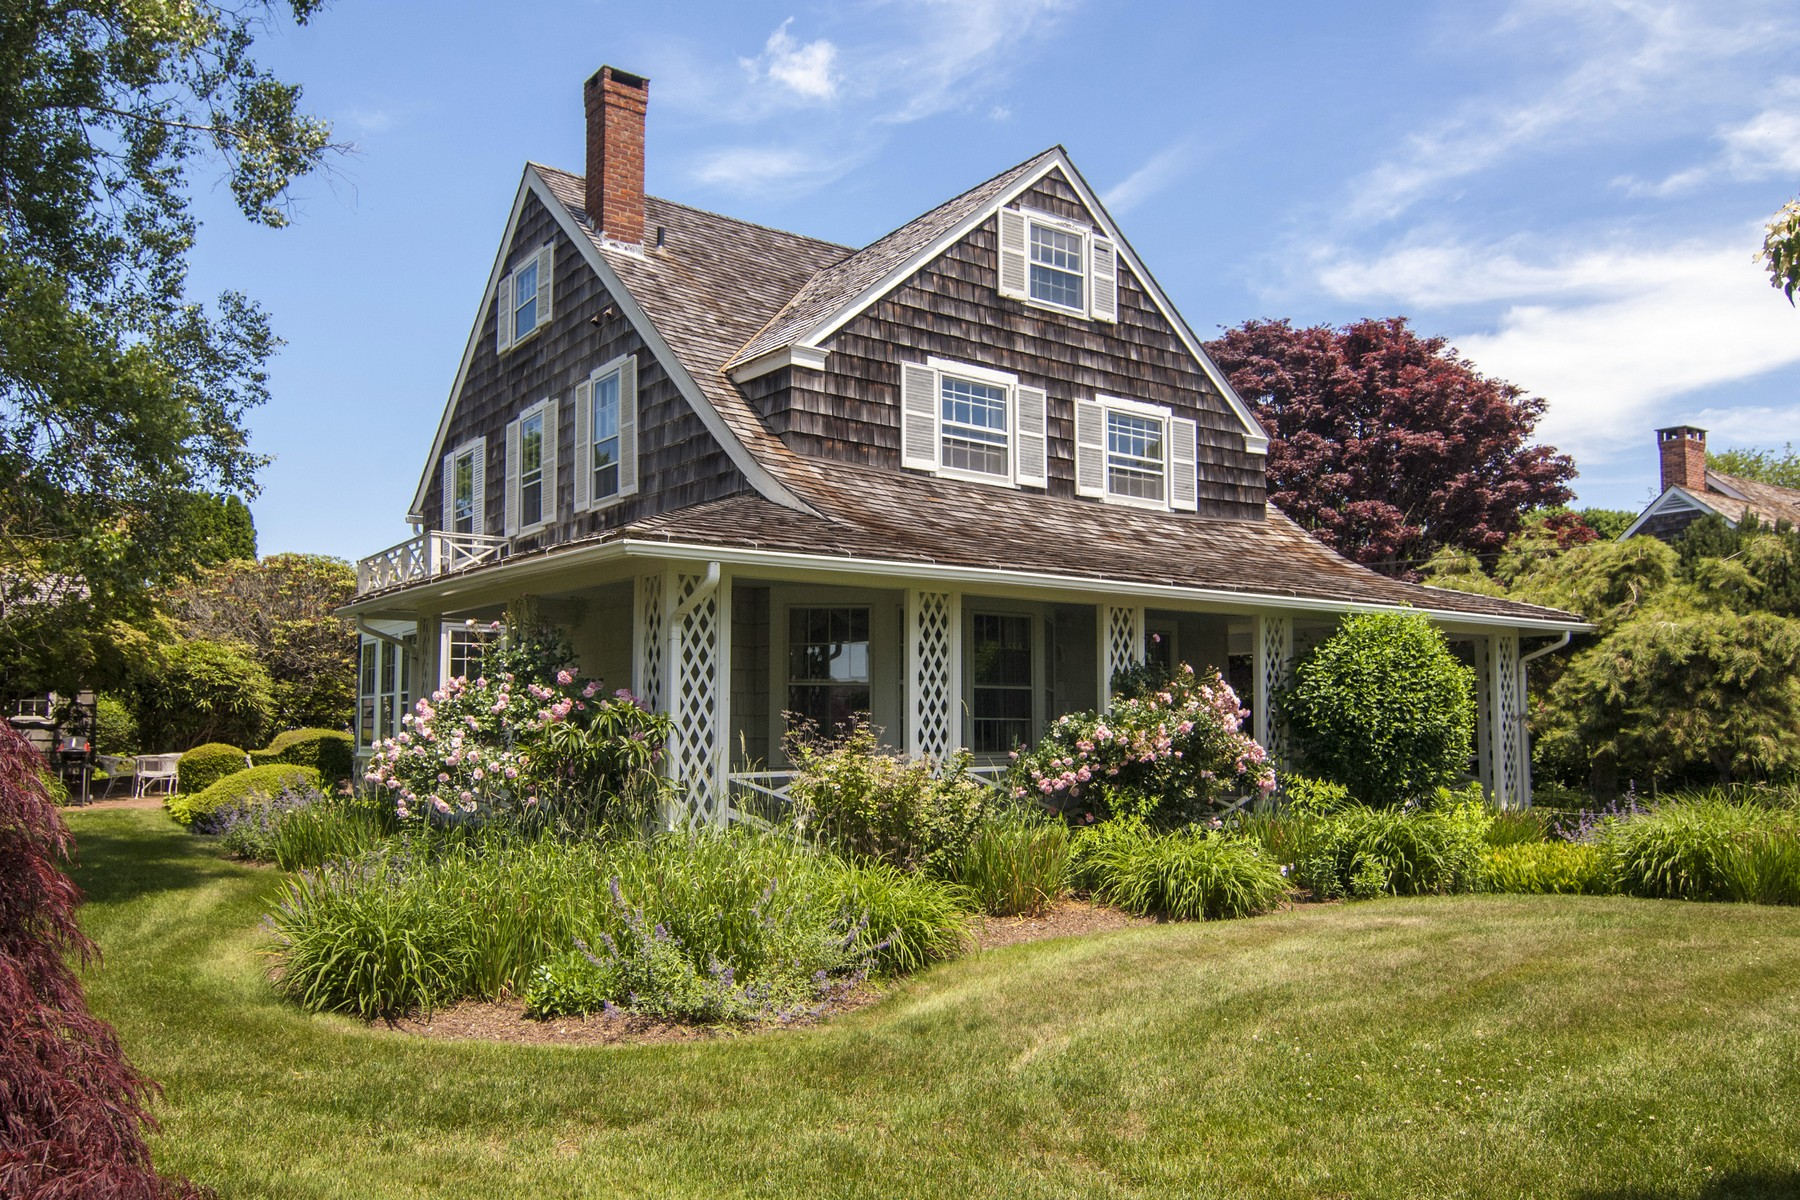 Property For Sale at Charming Turn Of The Century Home - Old Black Point